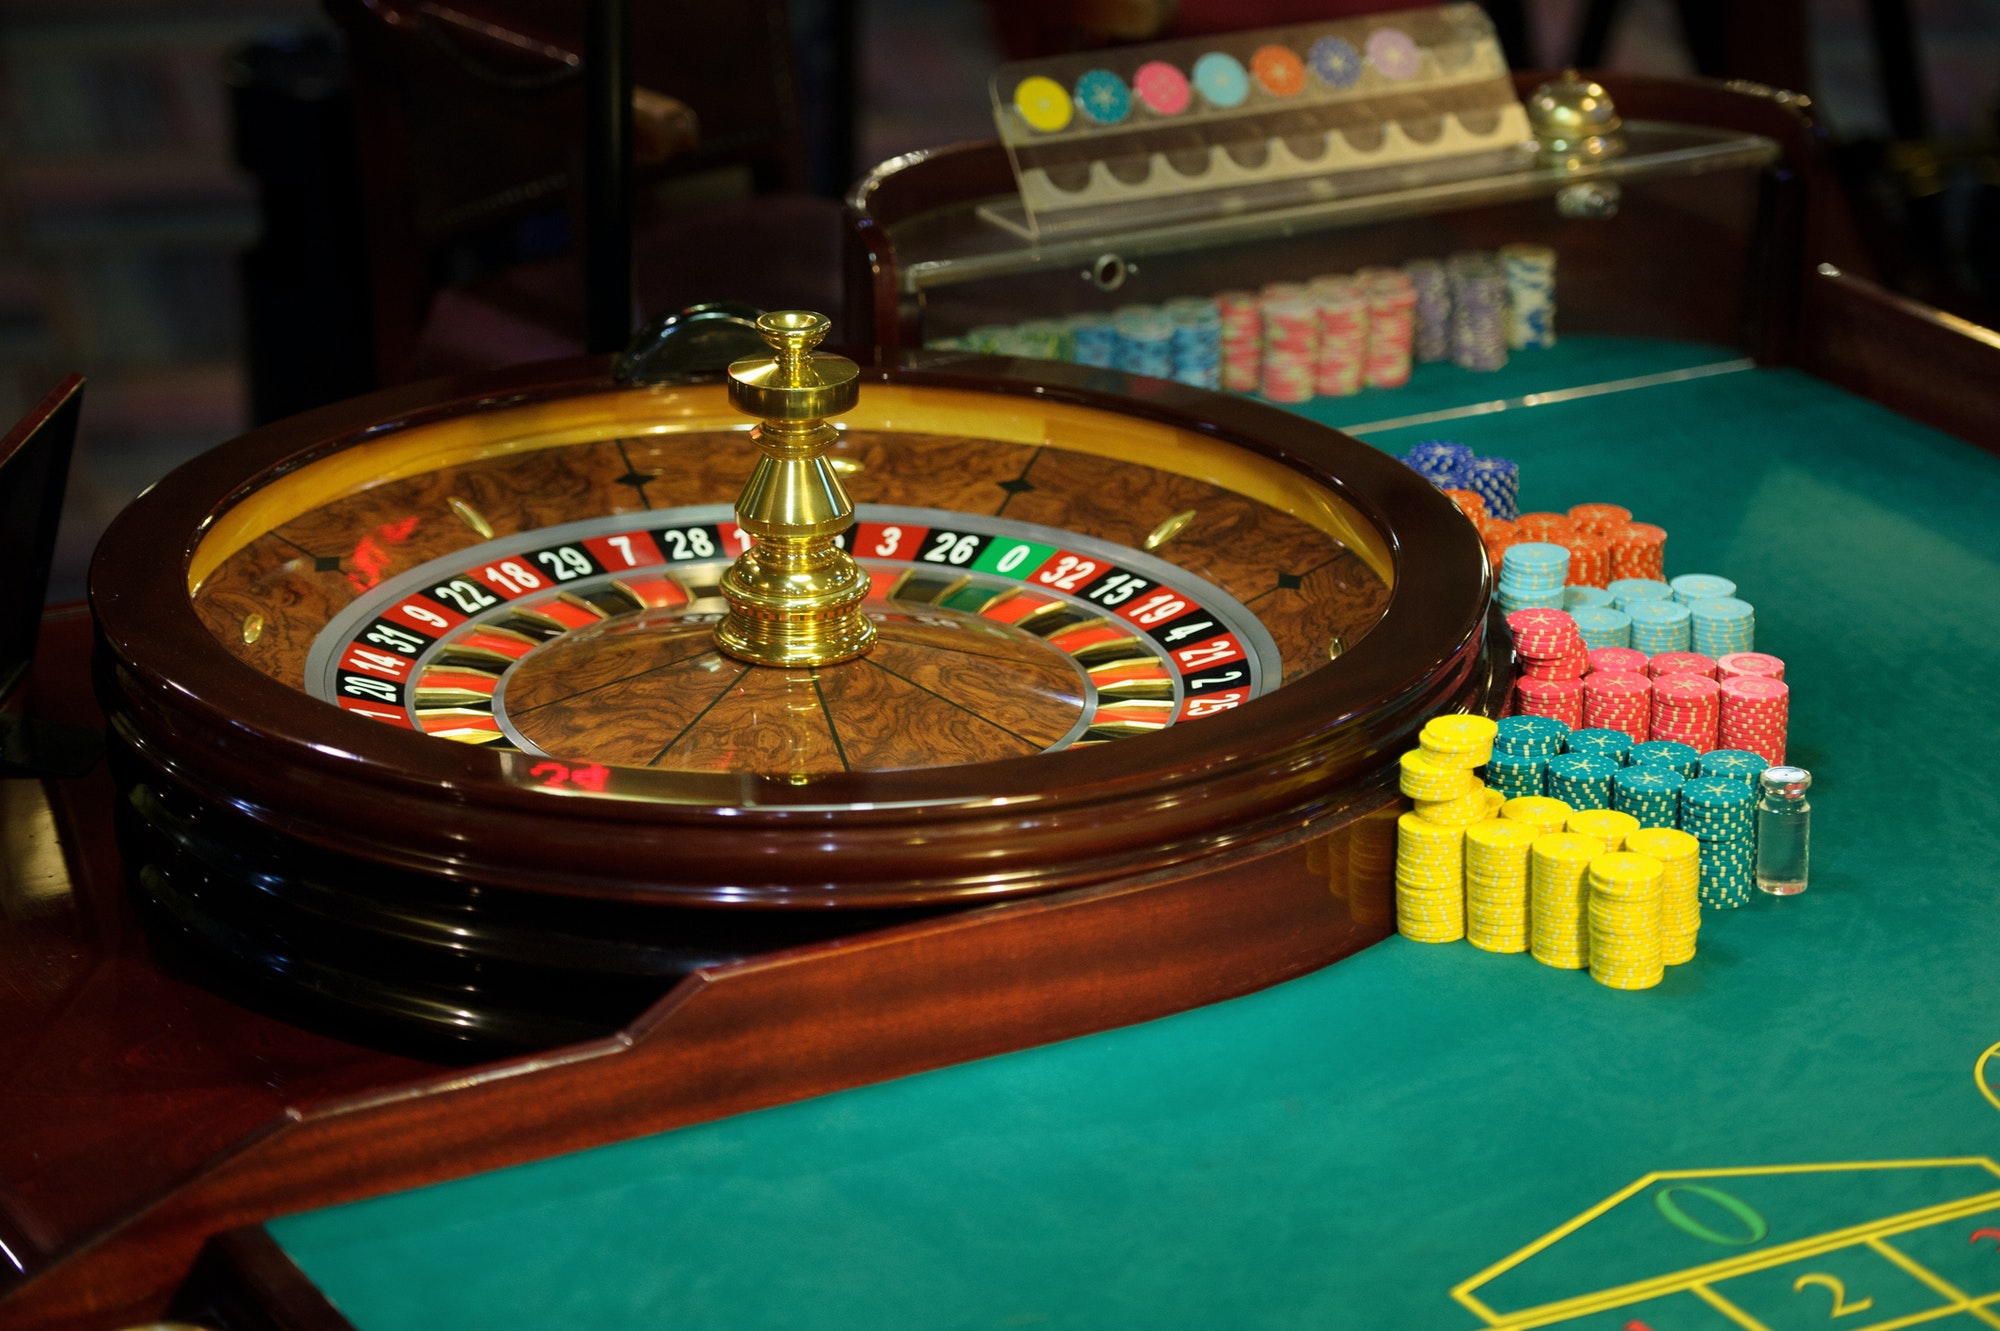 roulette and the green table with chips in the casino